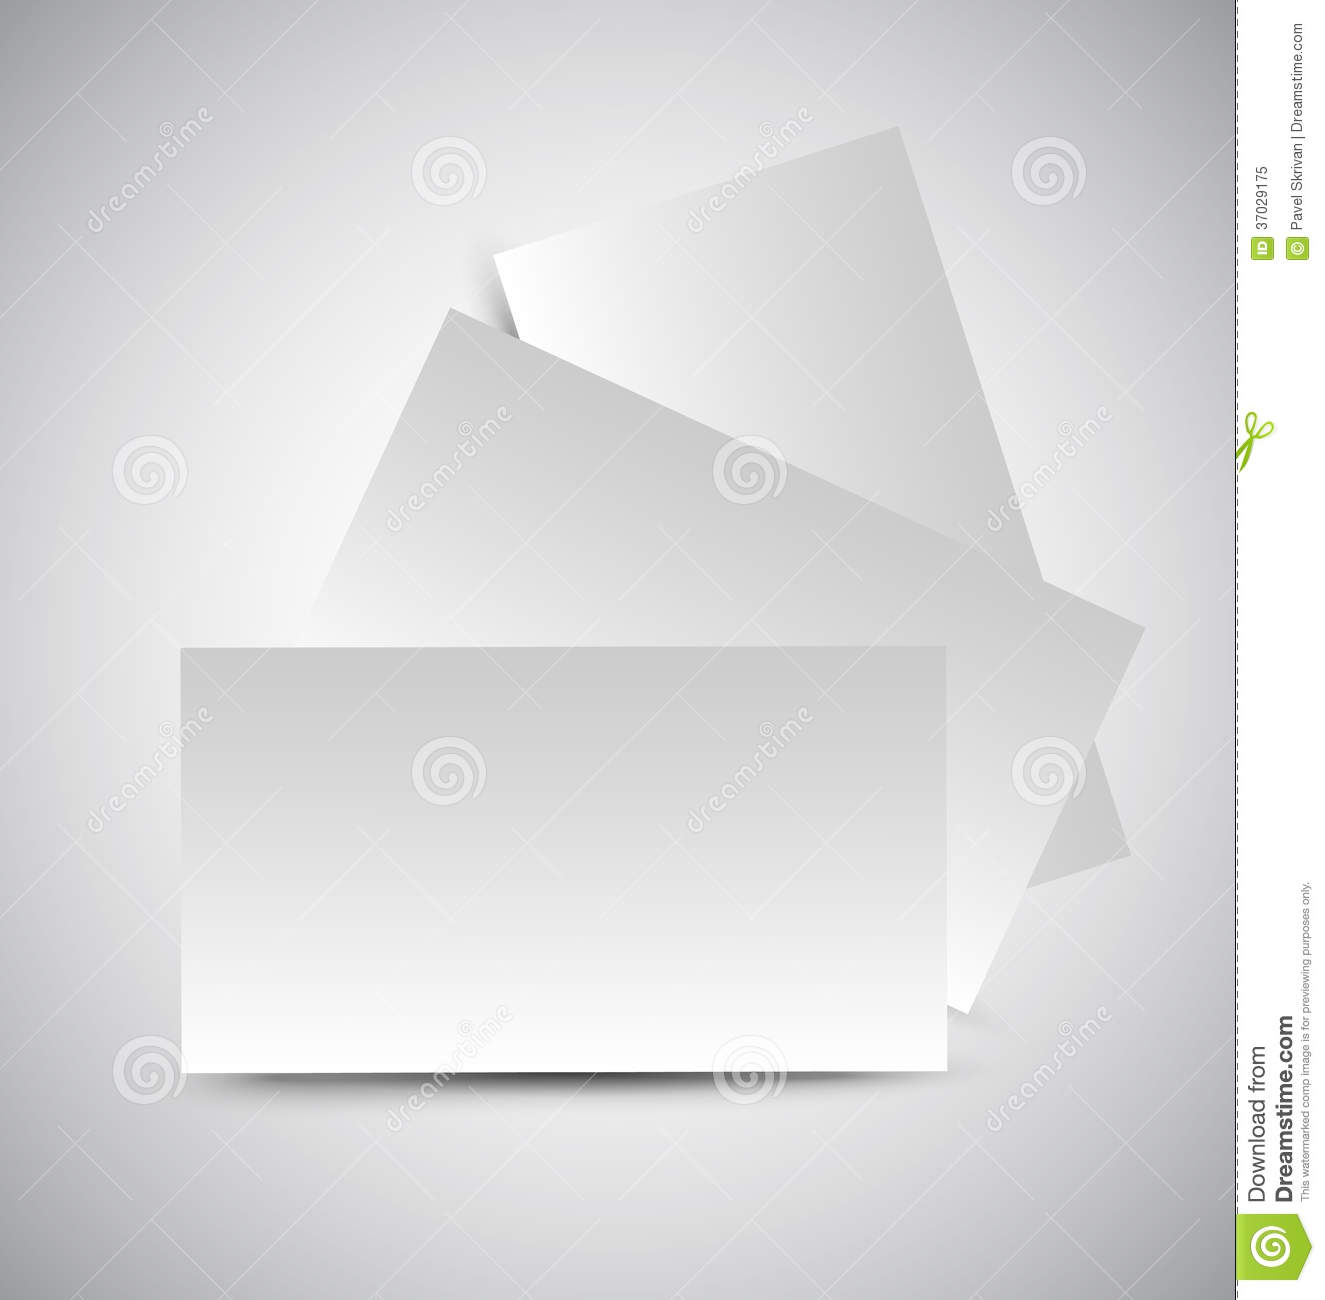 user interface design document template - business card royalty free stock photo image 37029175